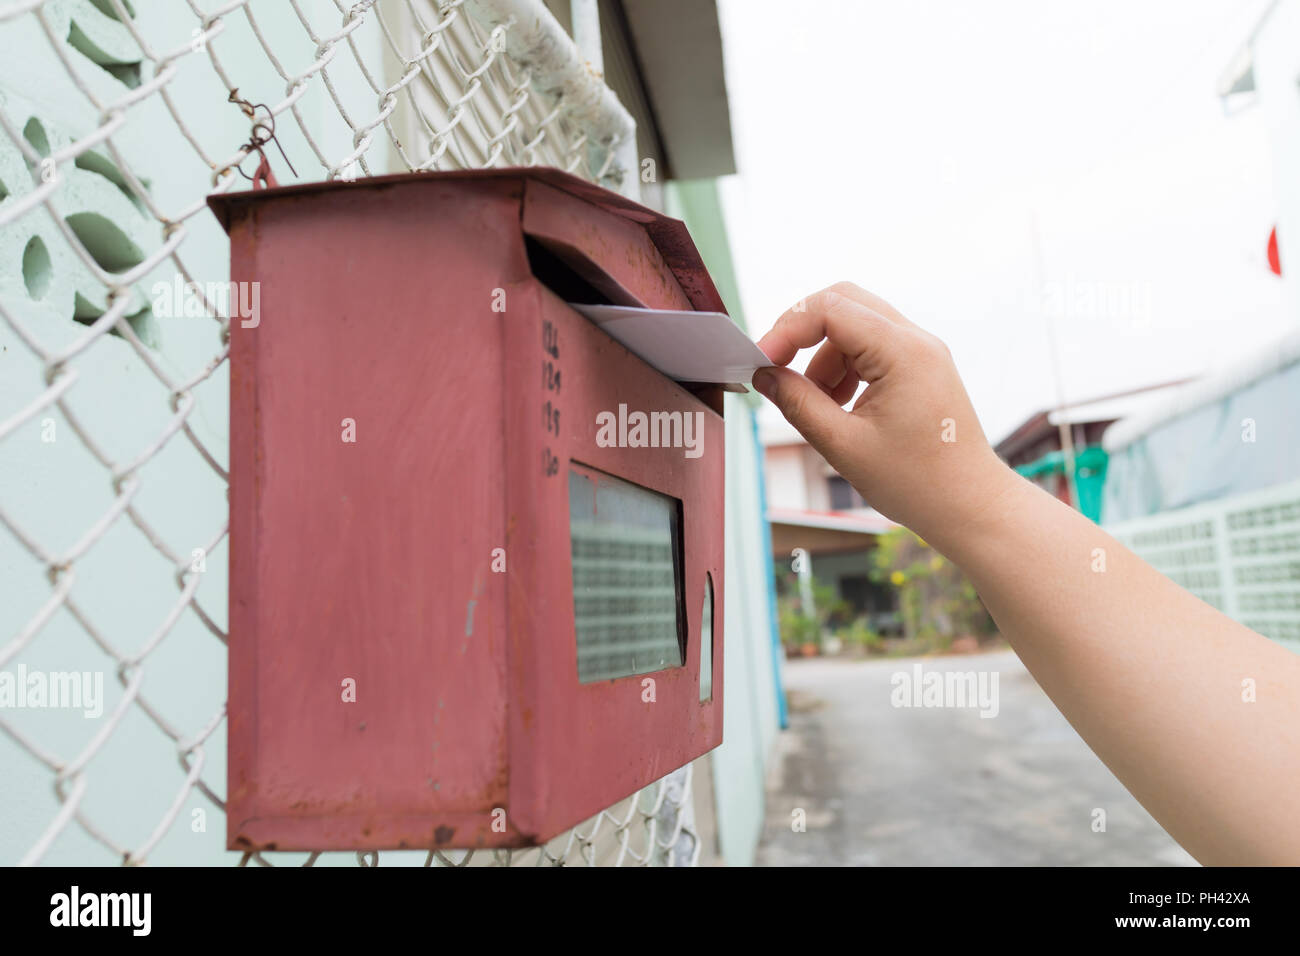 posting a letter to red british postbox on street, Closeup on a woman's hand as she is posting a letter, - Stock Image